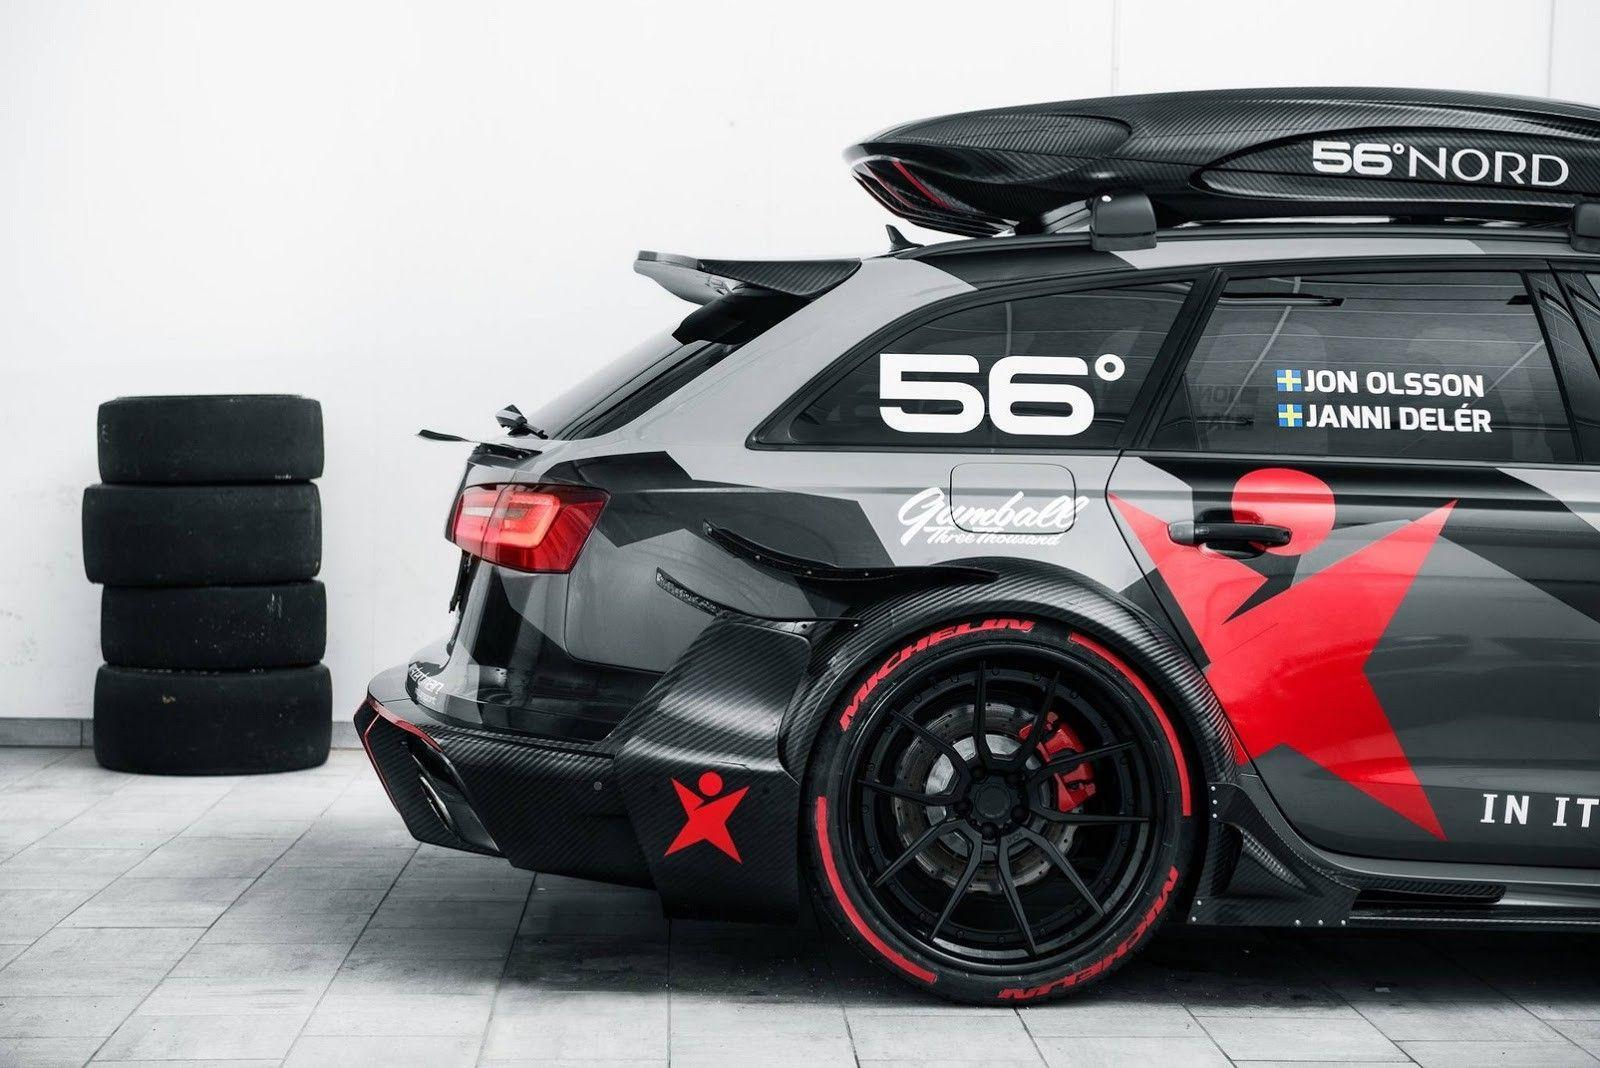 RS6, Audi RS6, Gumball, Gumball 3000 Wallpapers HD / Desktop and